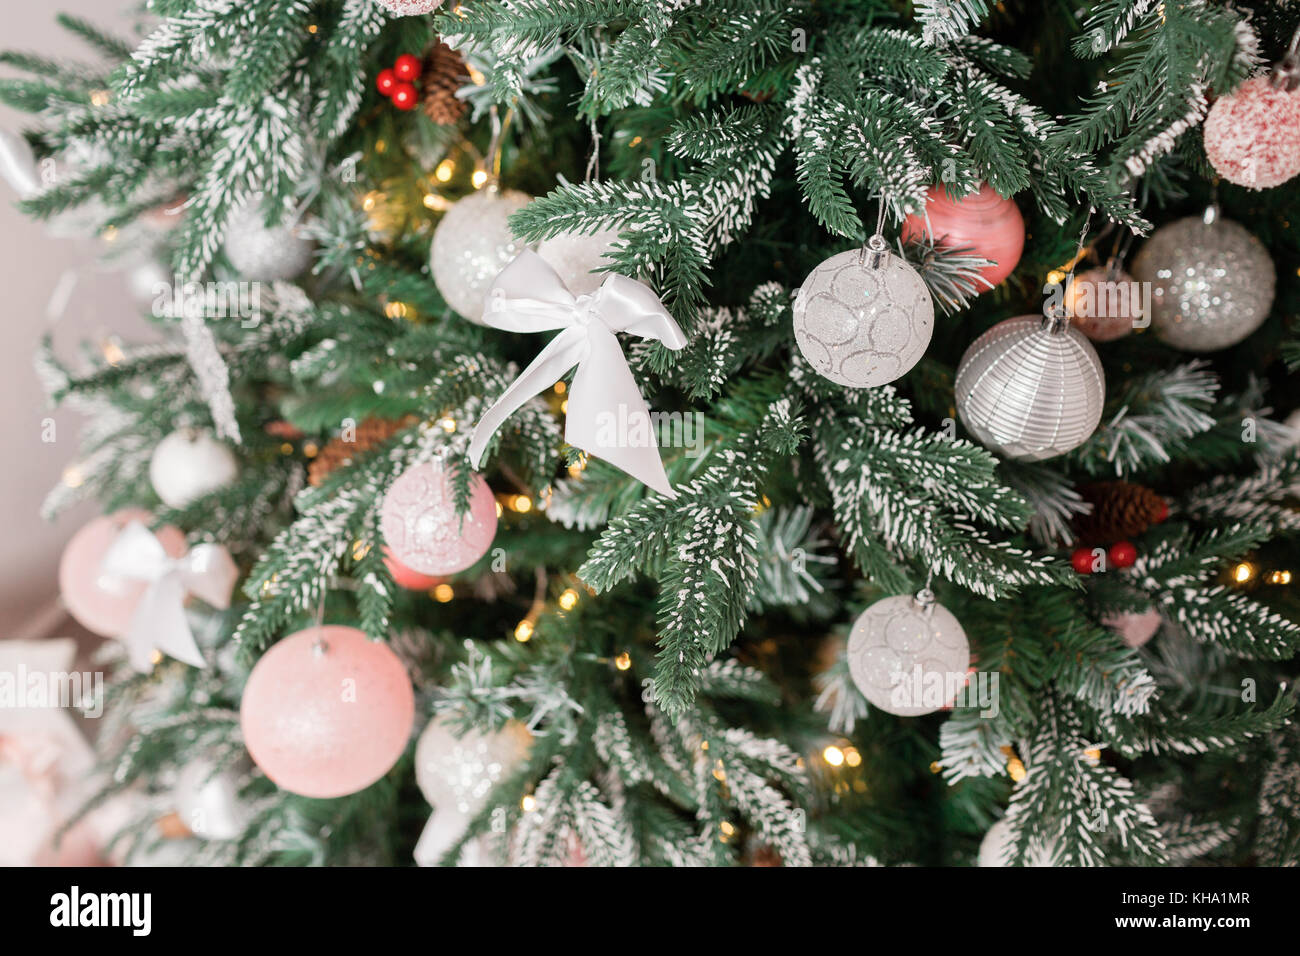 Christmas Tree Decorated With Toys In Silver And Pink Color In It